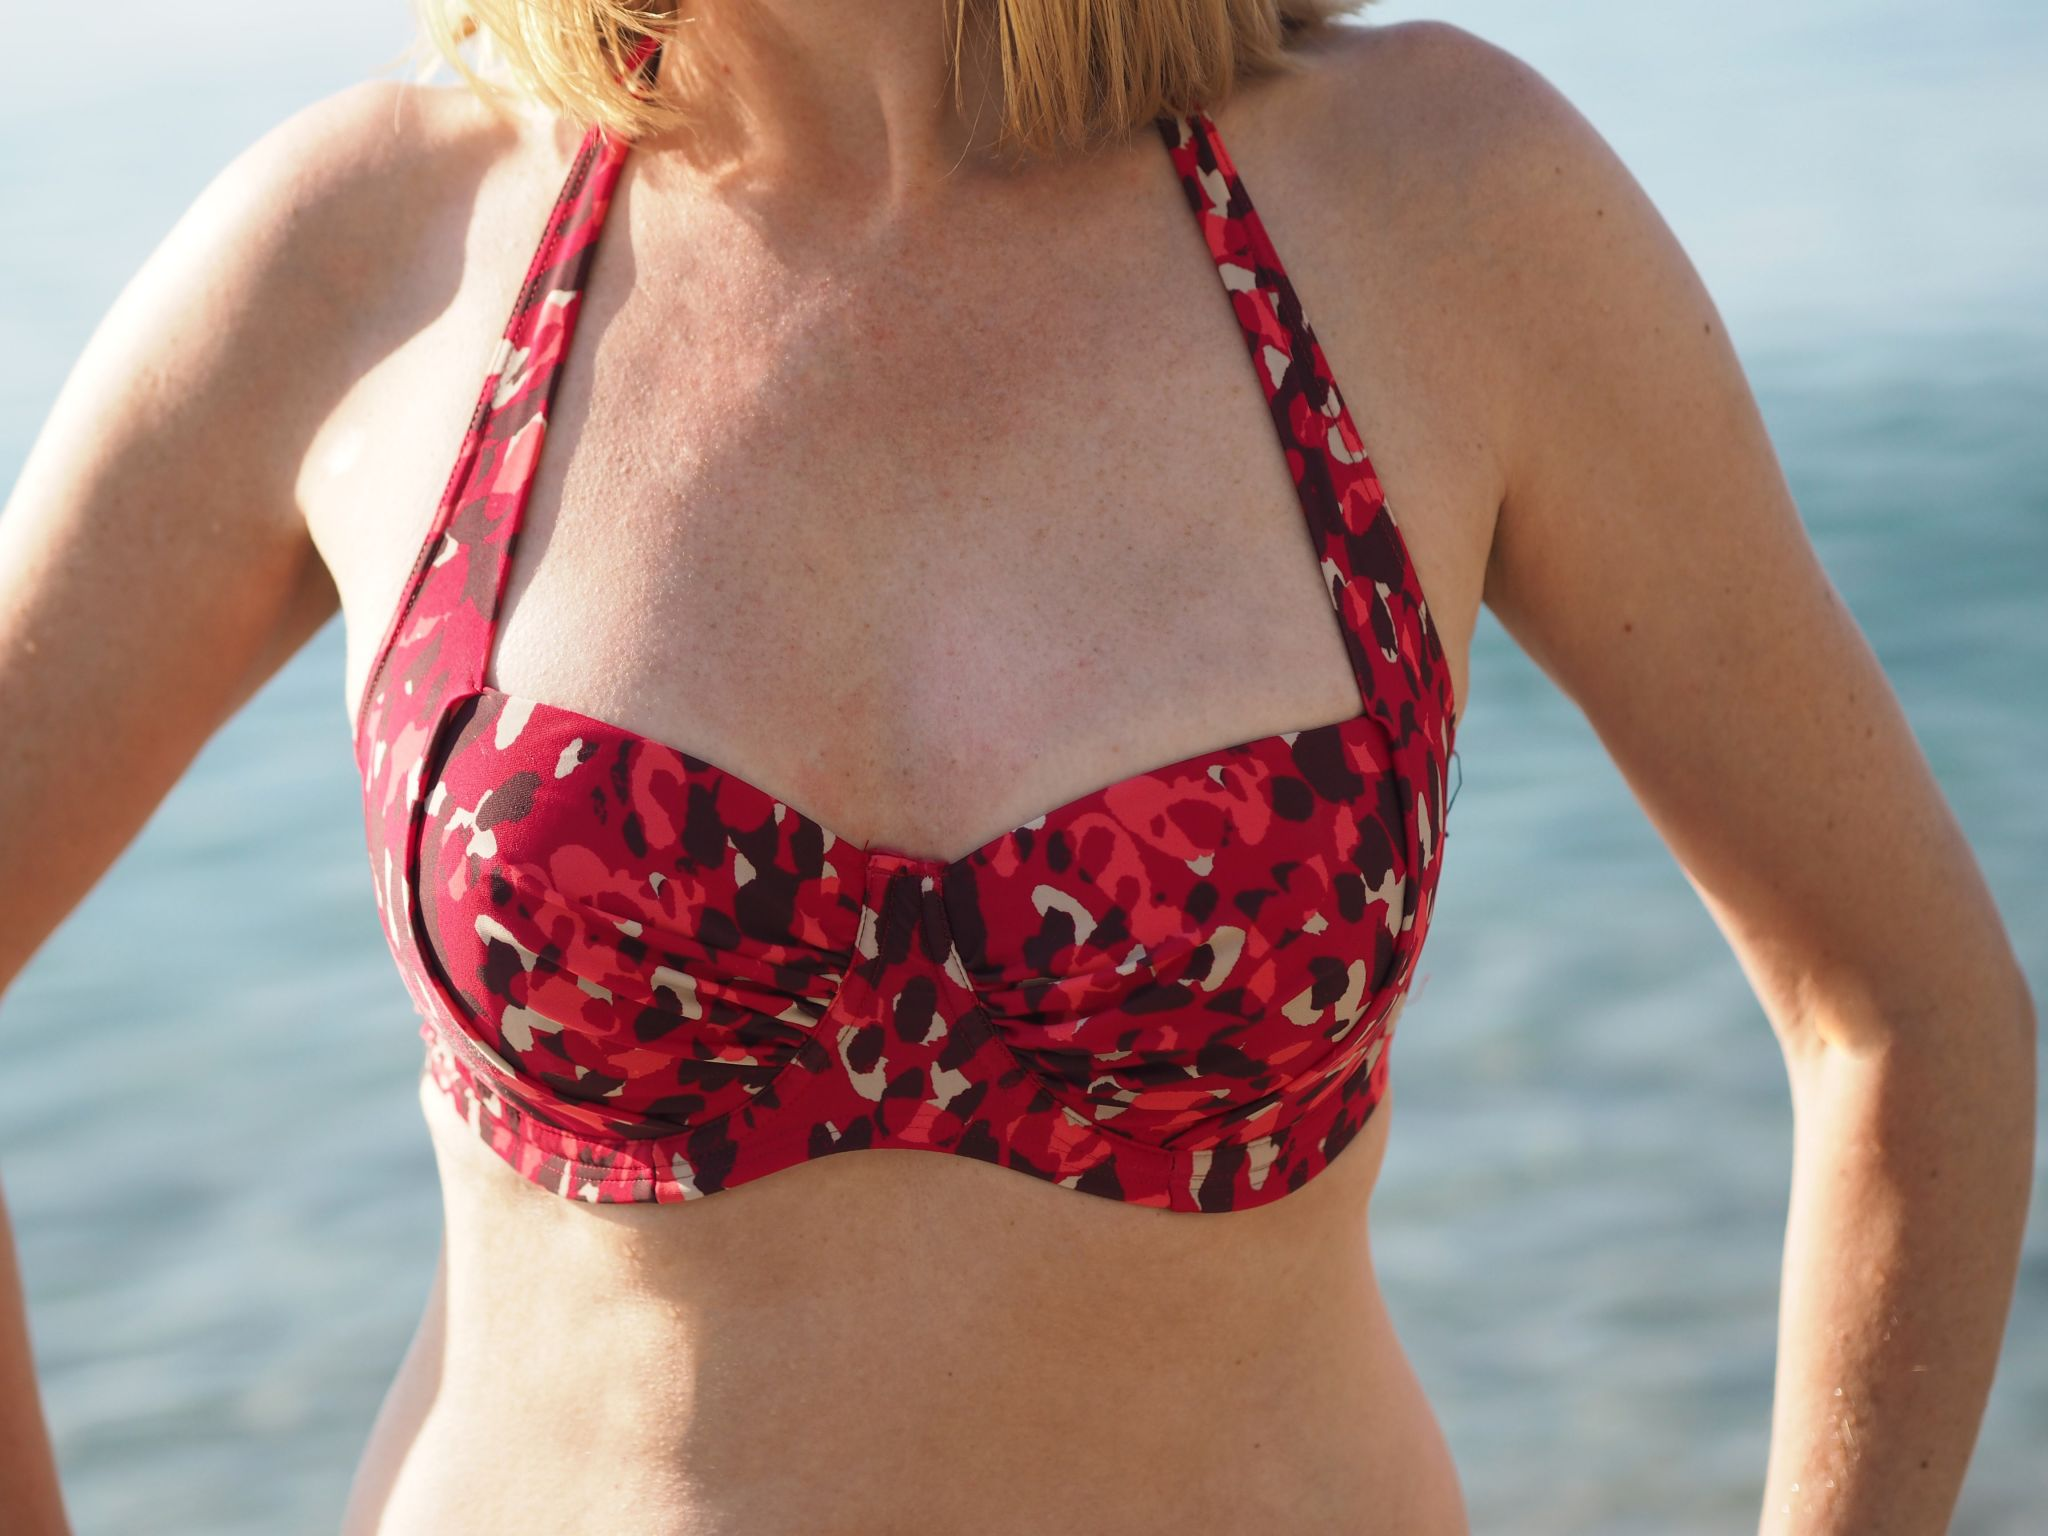 what-lizzy-loves-red-halter-neck-leopard-print-bikini-top-over40-nerja-spain